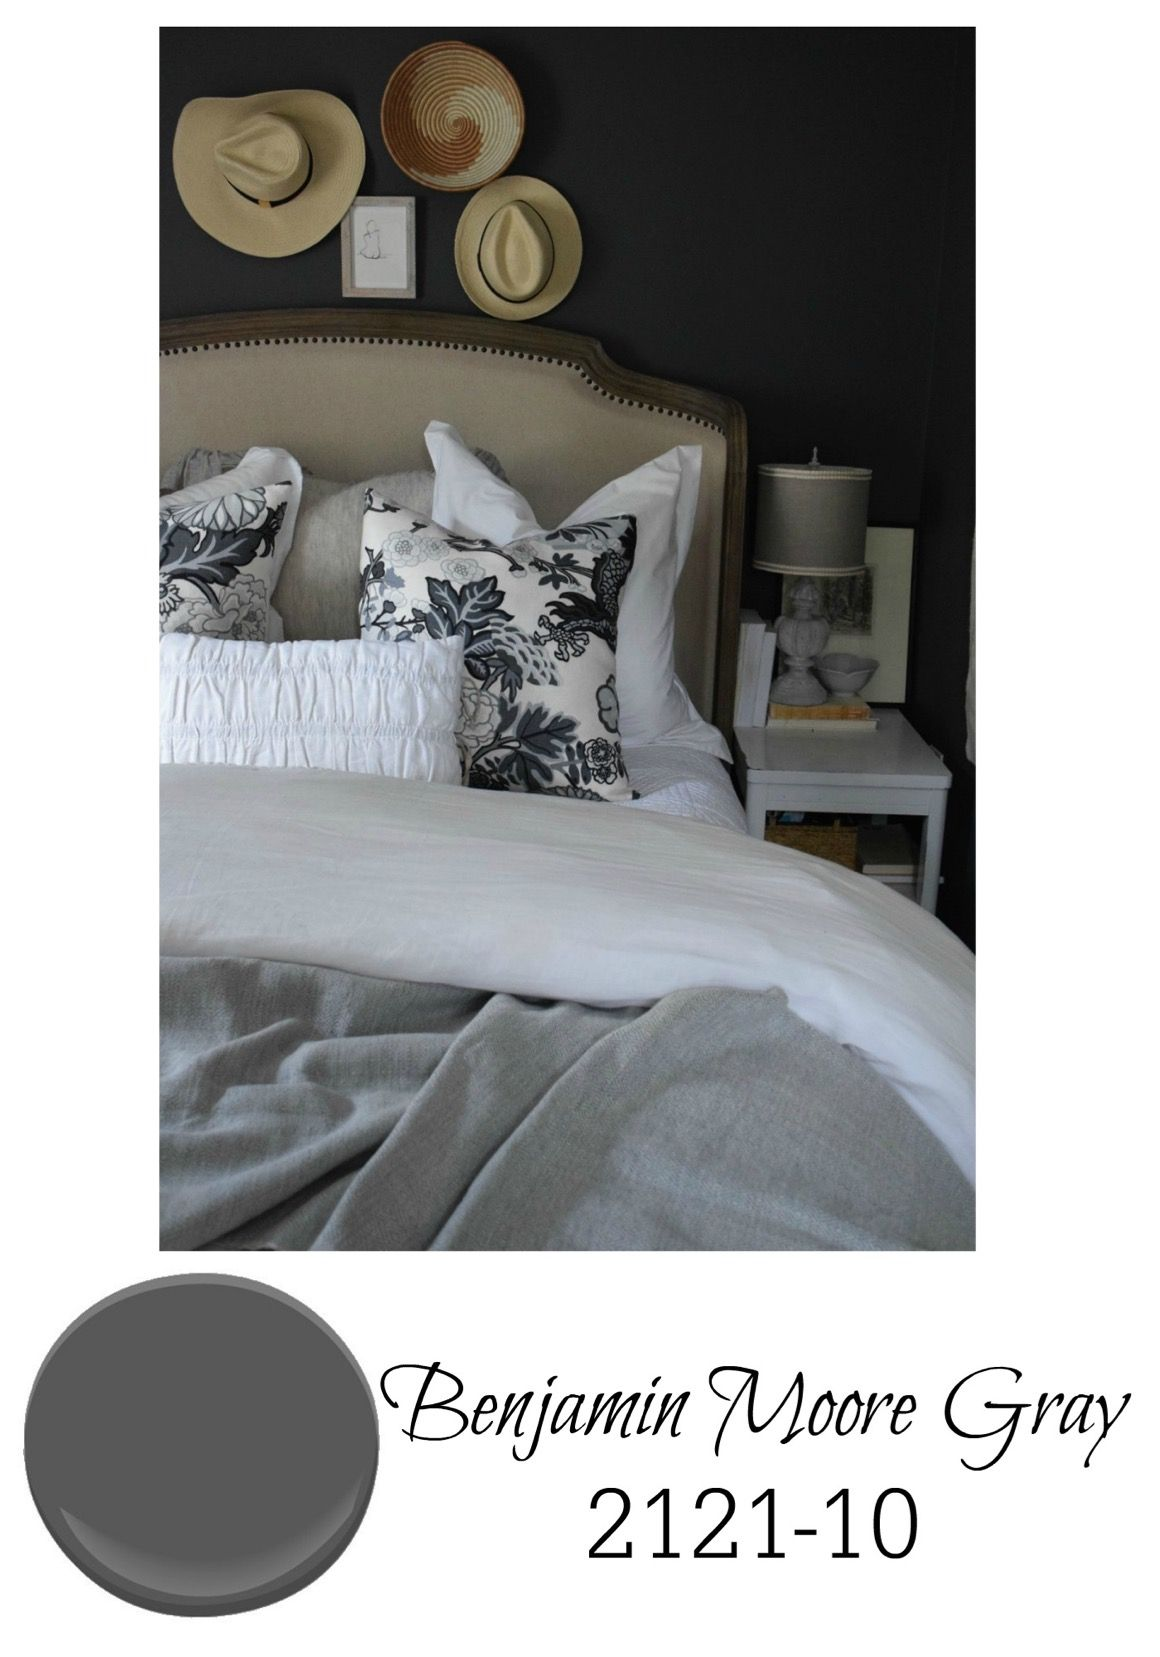 Best Gray Paint For Bedroom Walls From Benjamin Moore